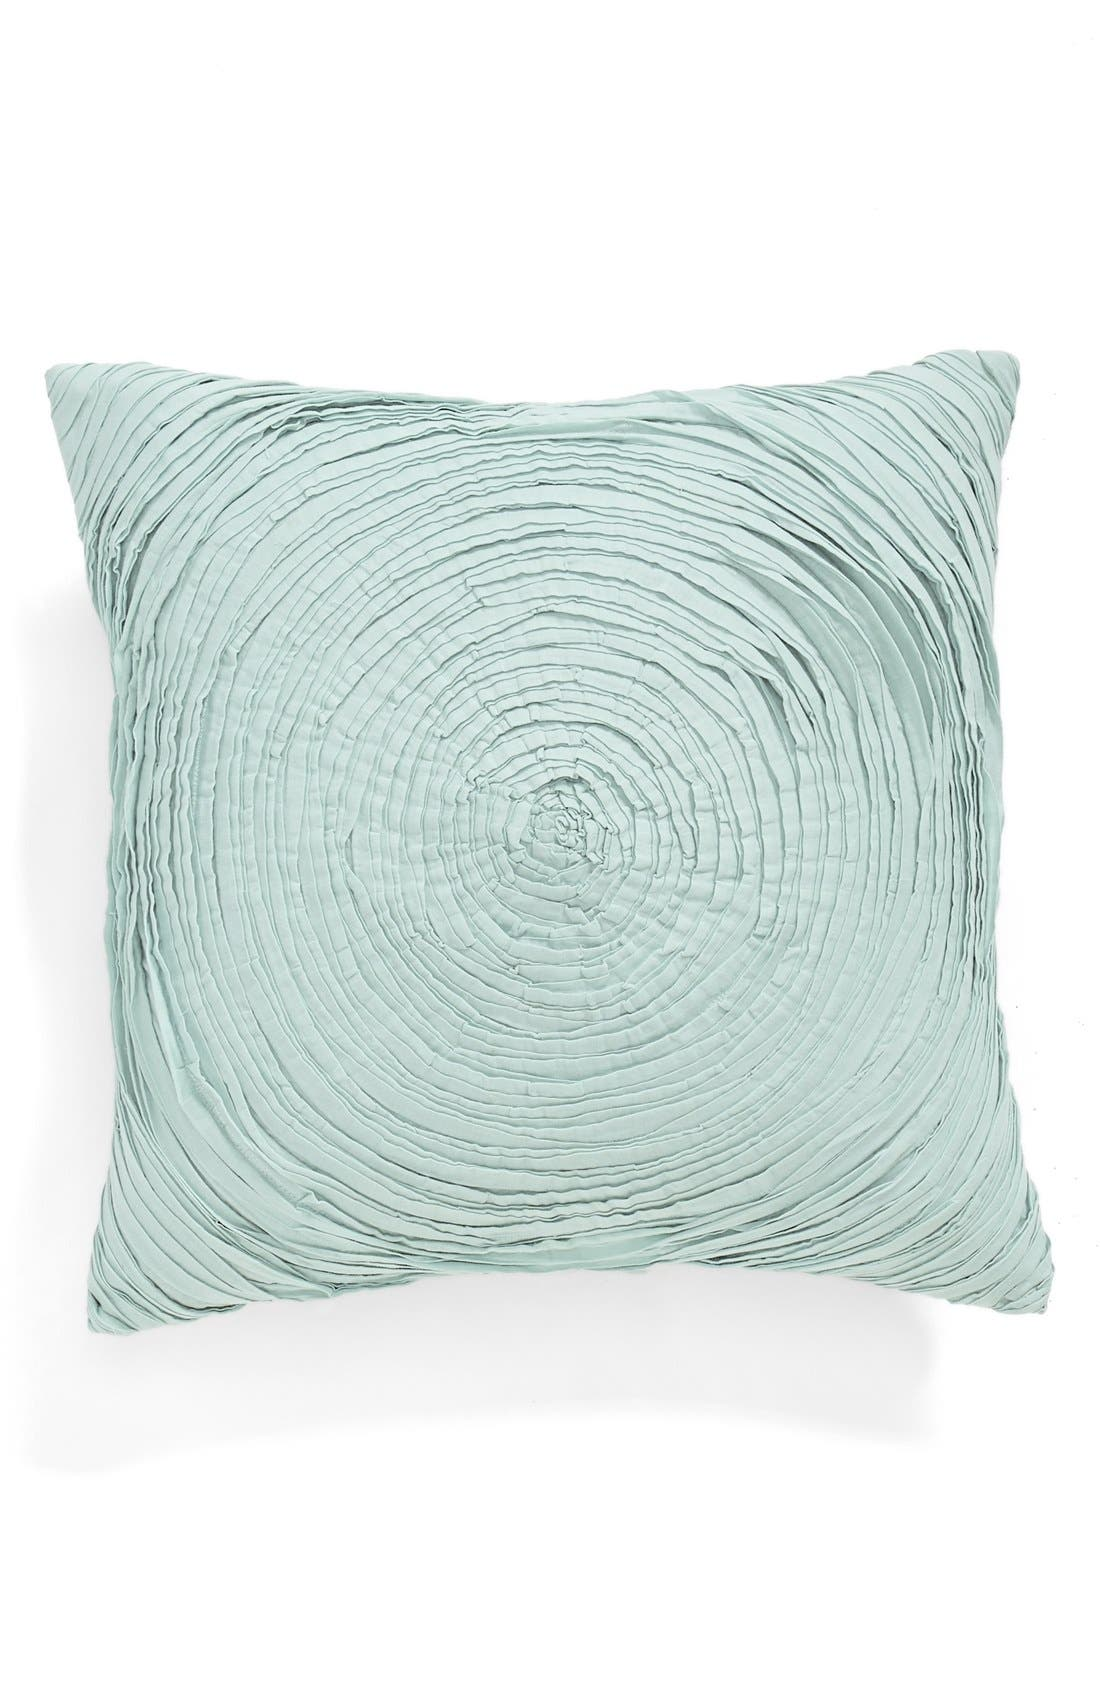 'Full Bloom' Accent Pillow,                         Main,                         color, Teal Mist